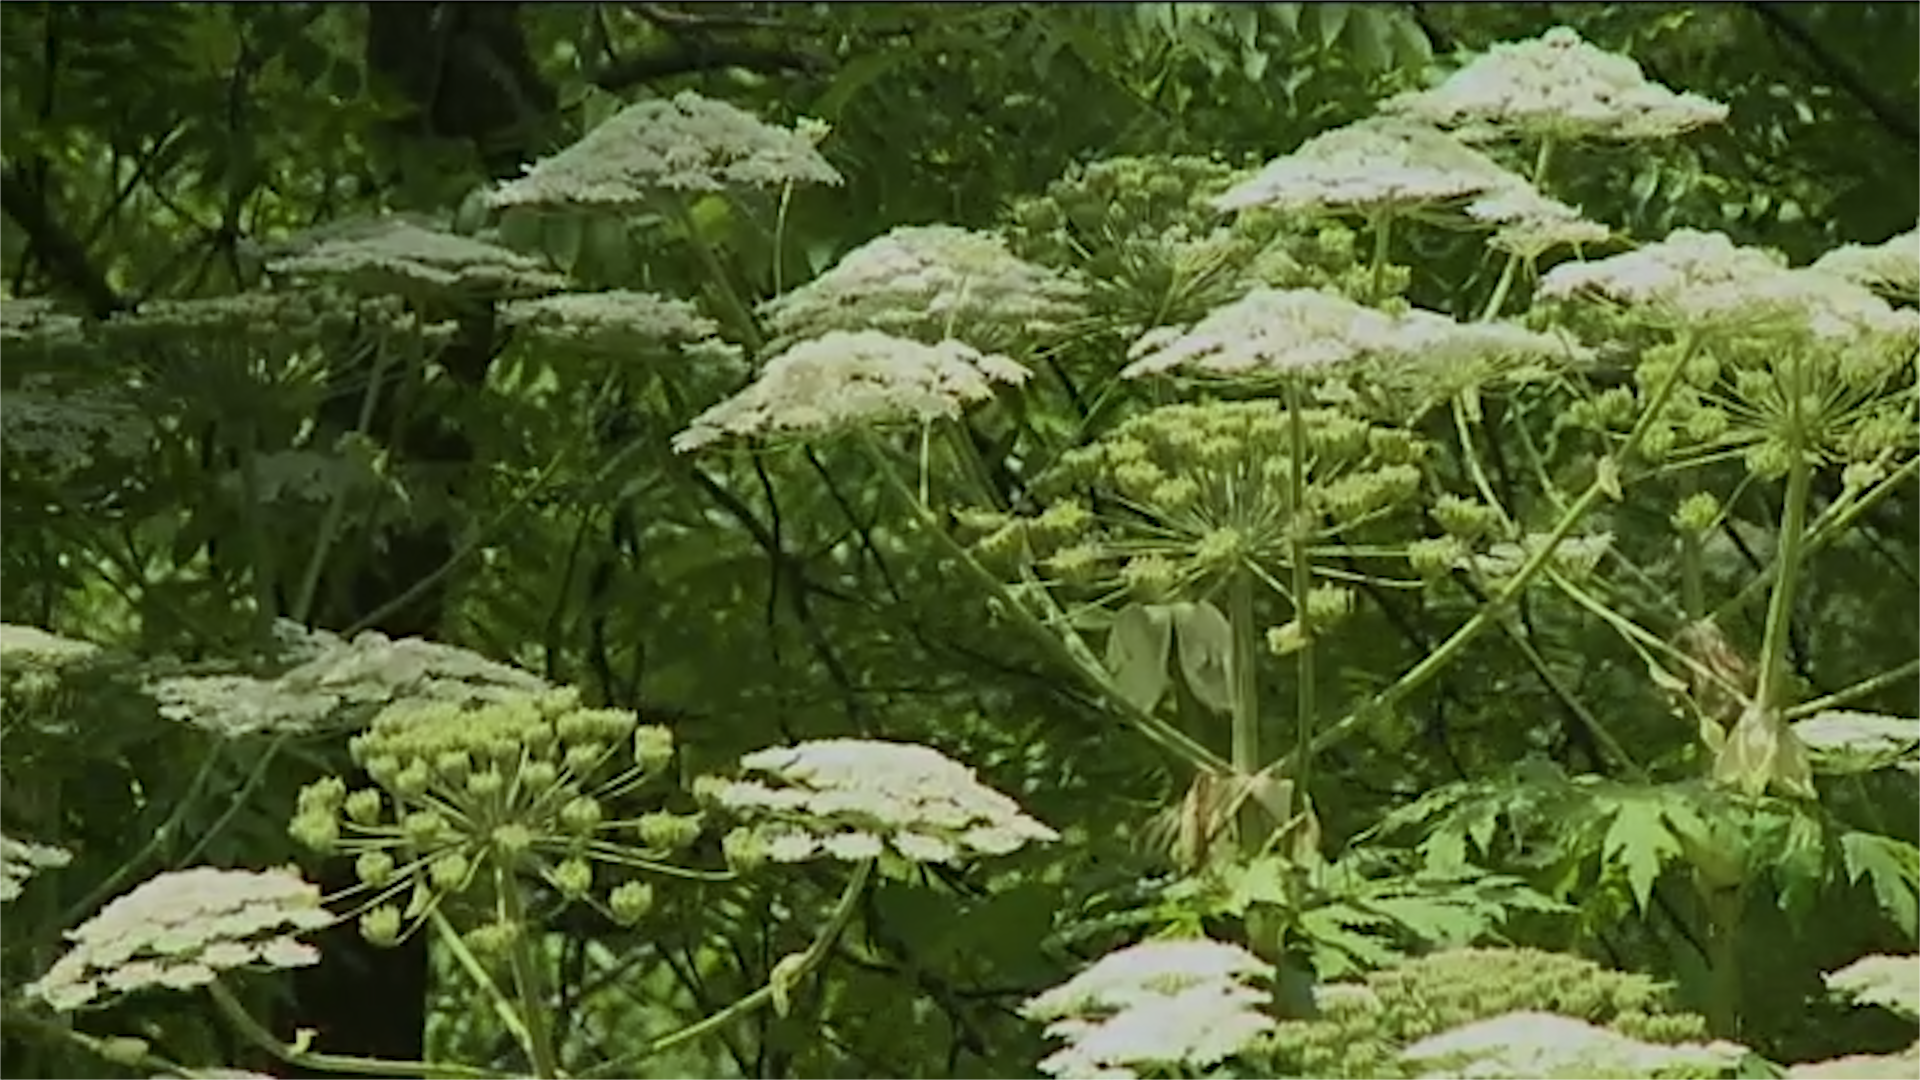 Horror Plant Spreads In US, Spotted In Virginia For First Time